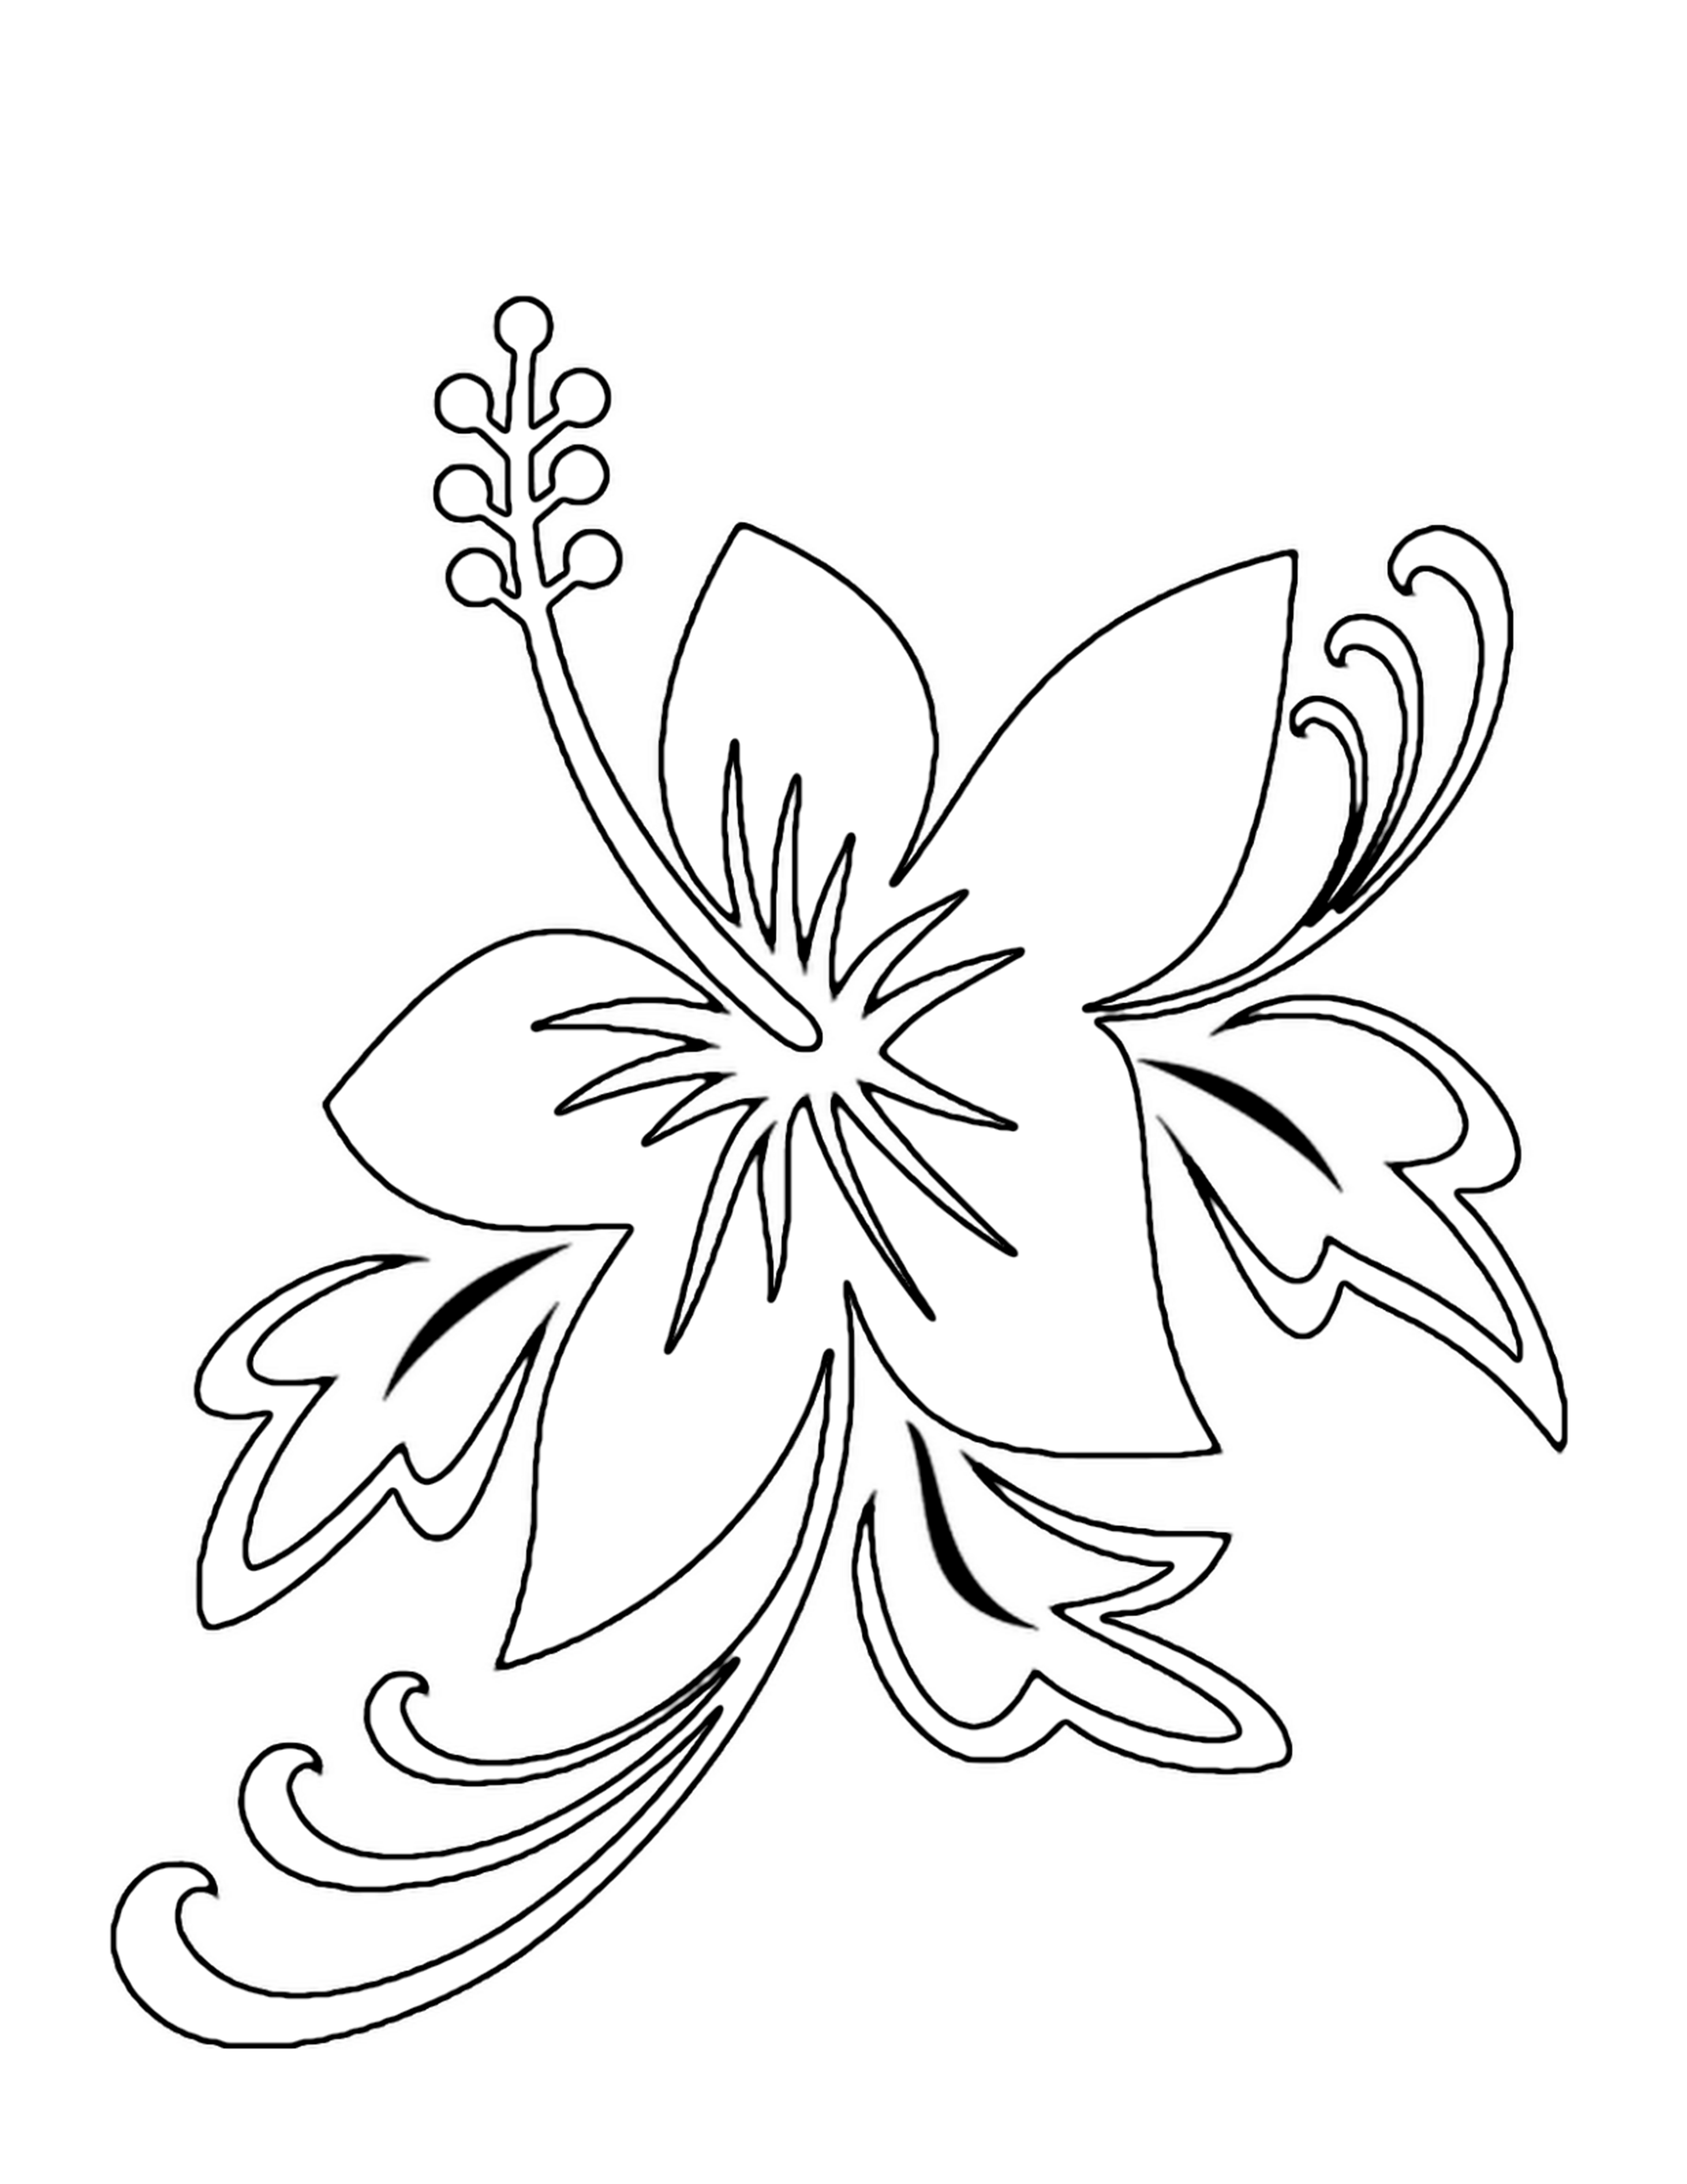 images of flowers to color 10 flower coloring sheets for girls and boys all esl of color images flowers to